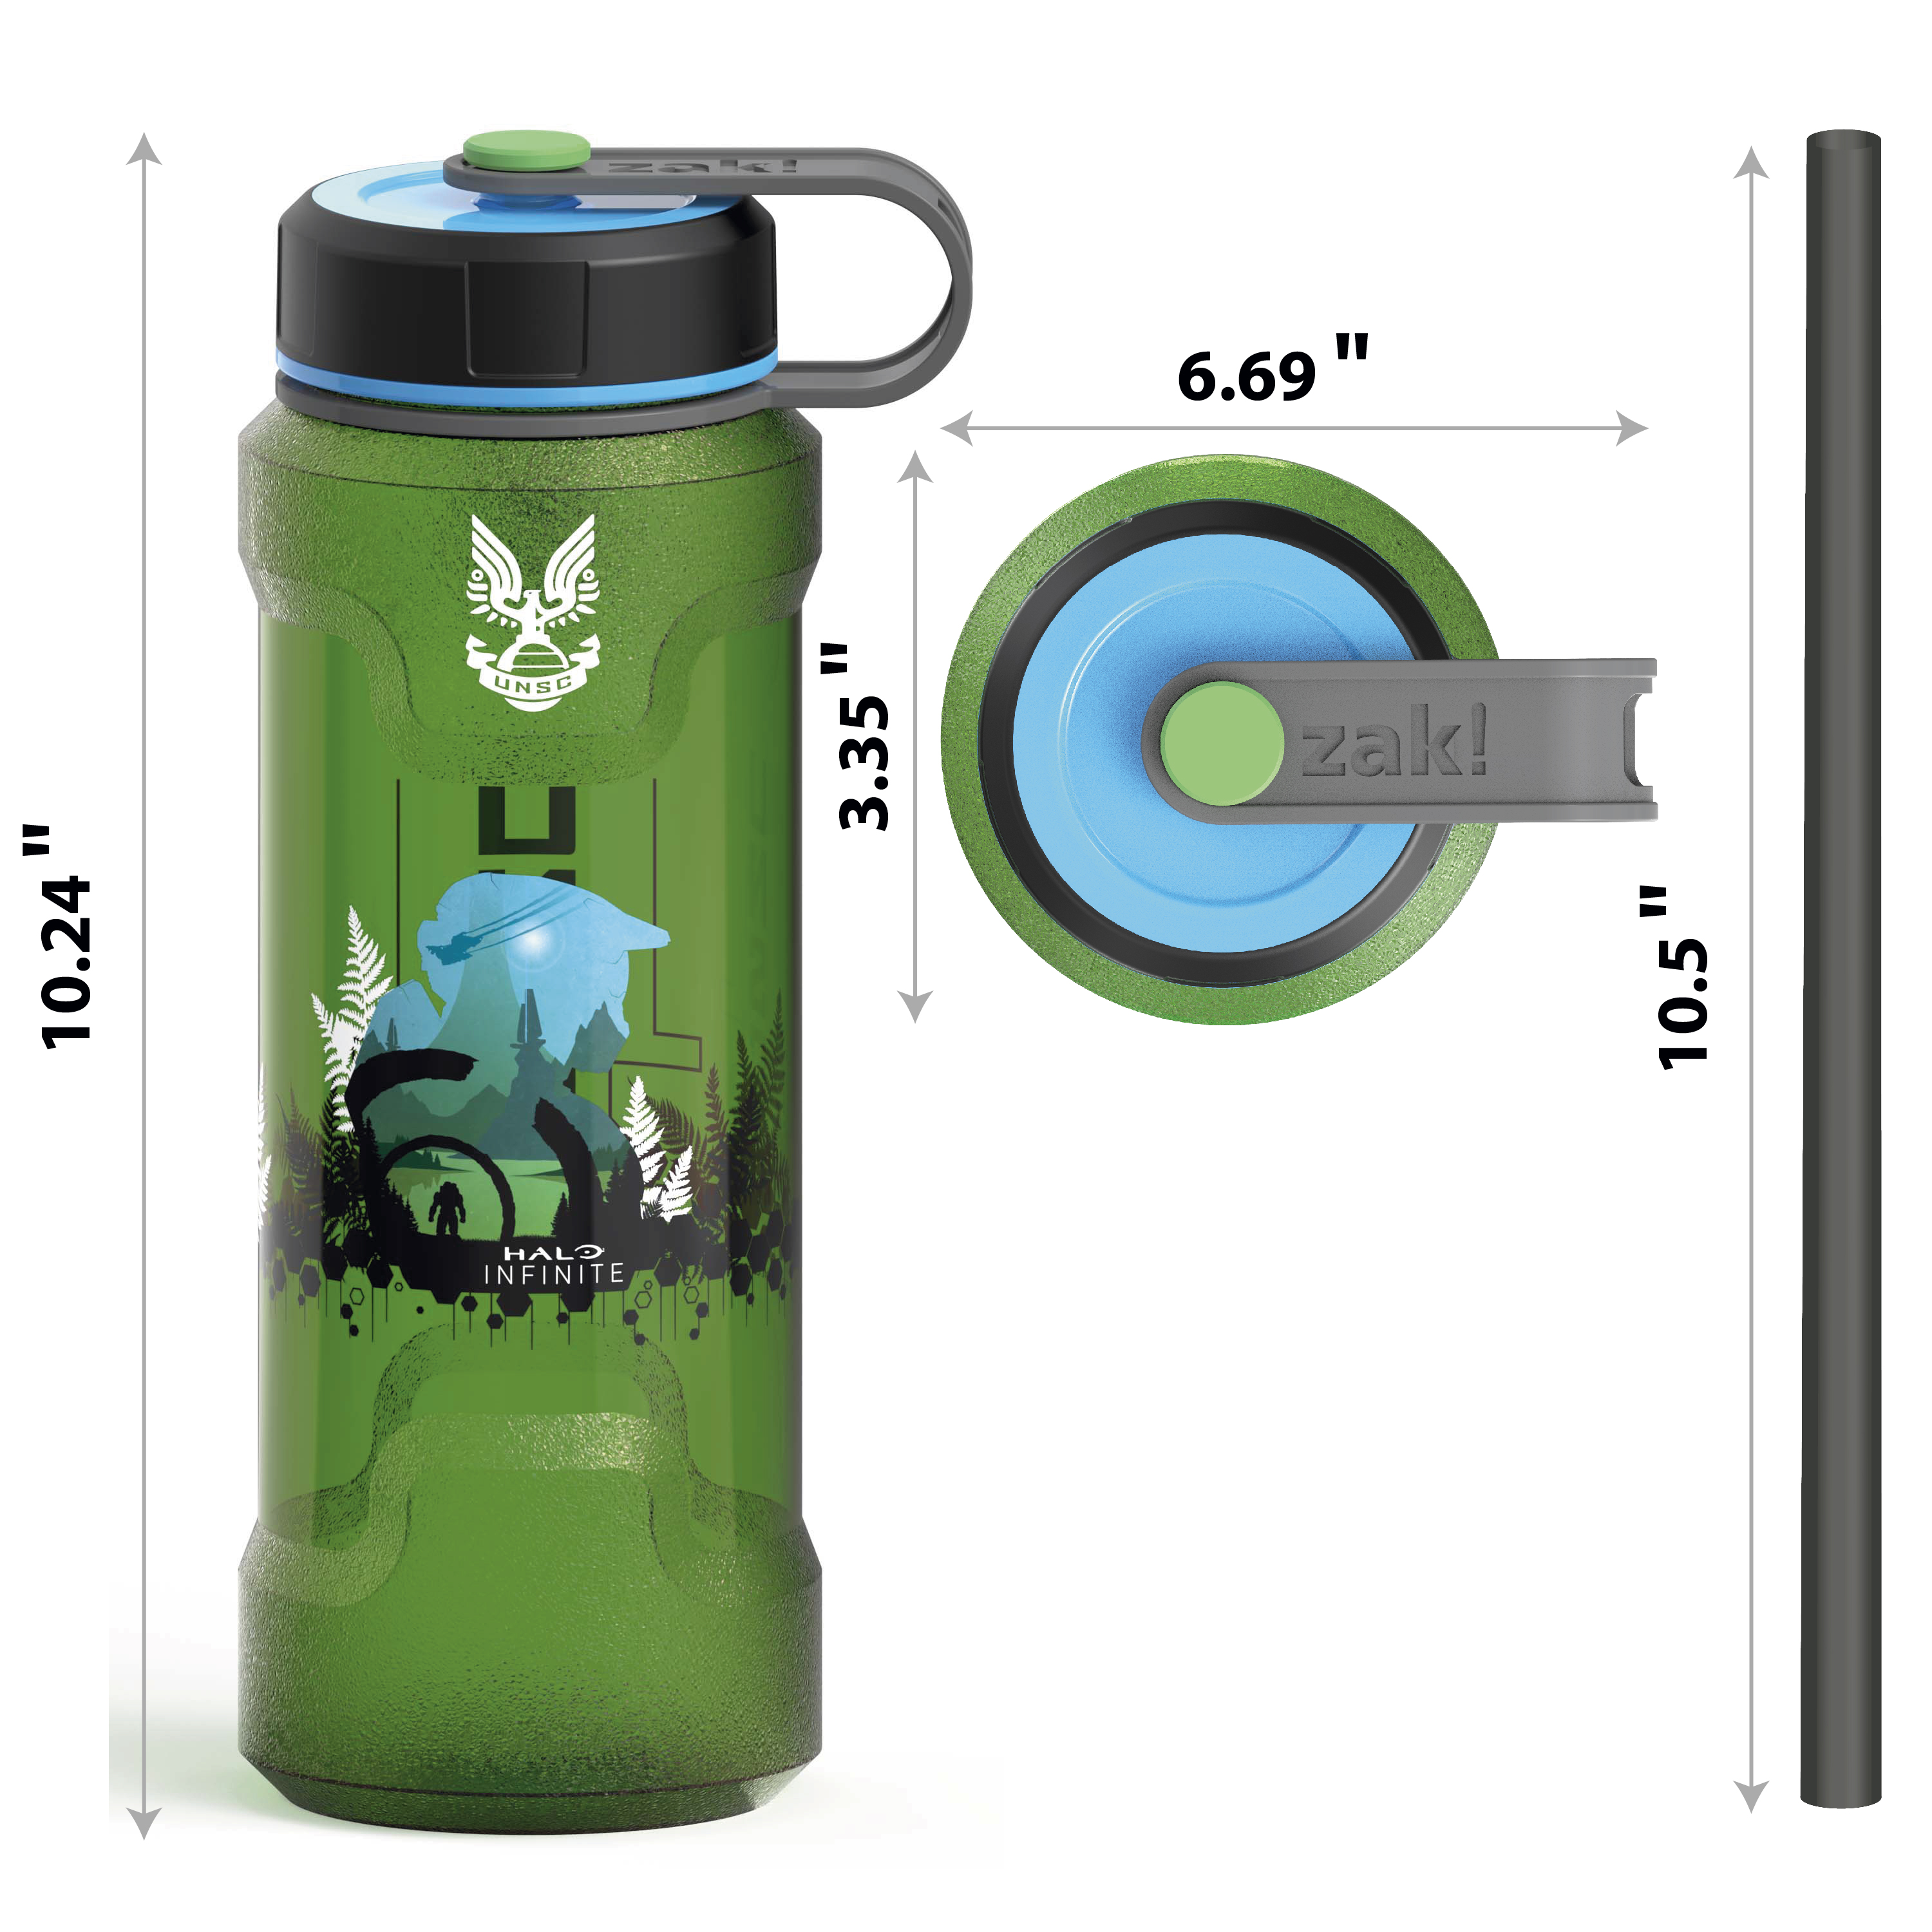 Halo 36 ounce Reusable Plastic Water Bottle, United Nations Space Command slideshow image 5